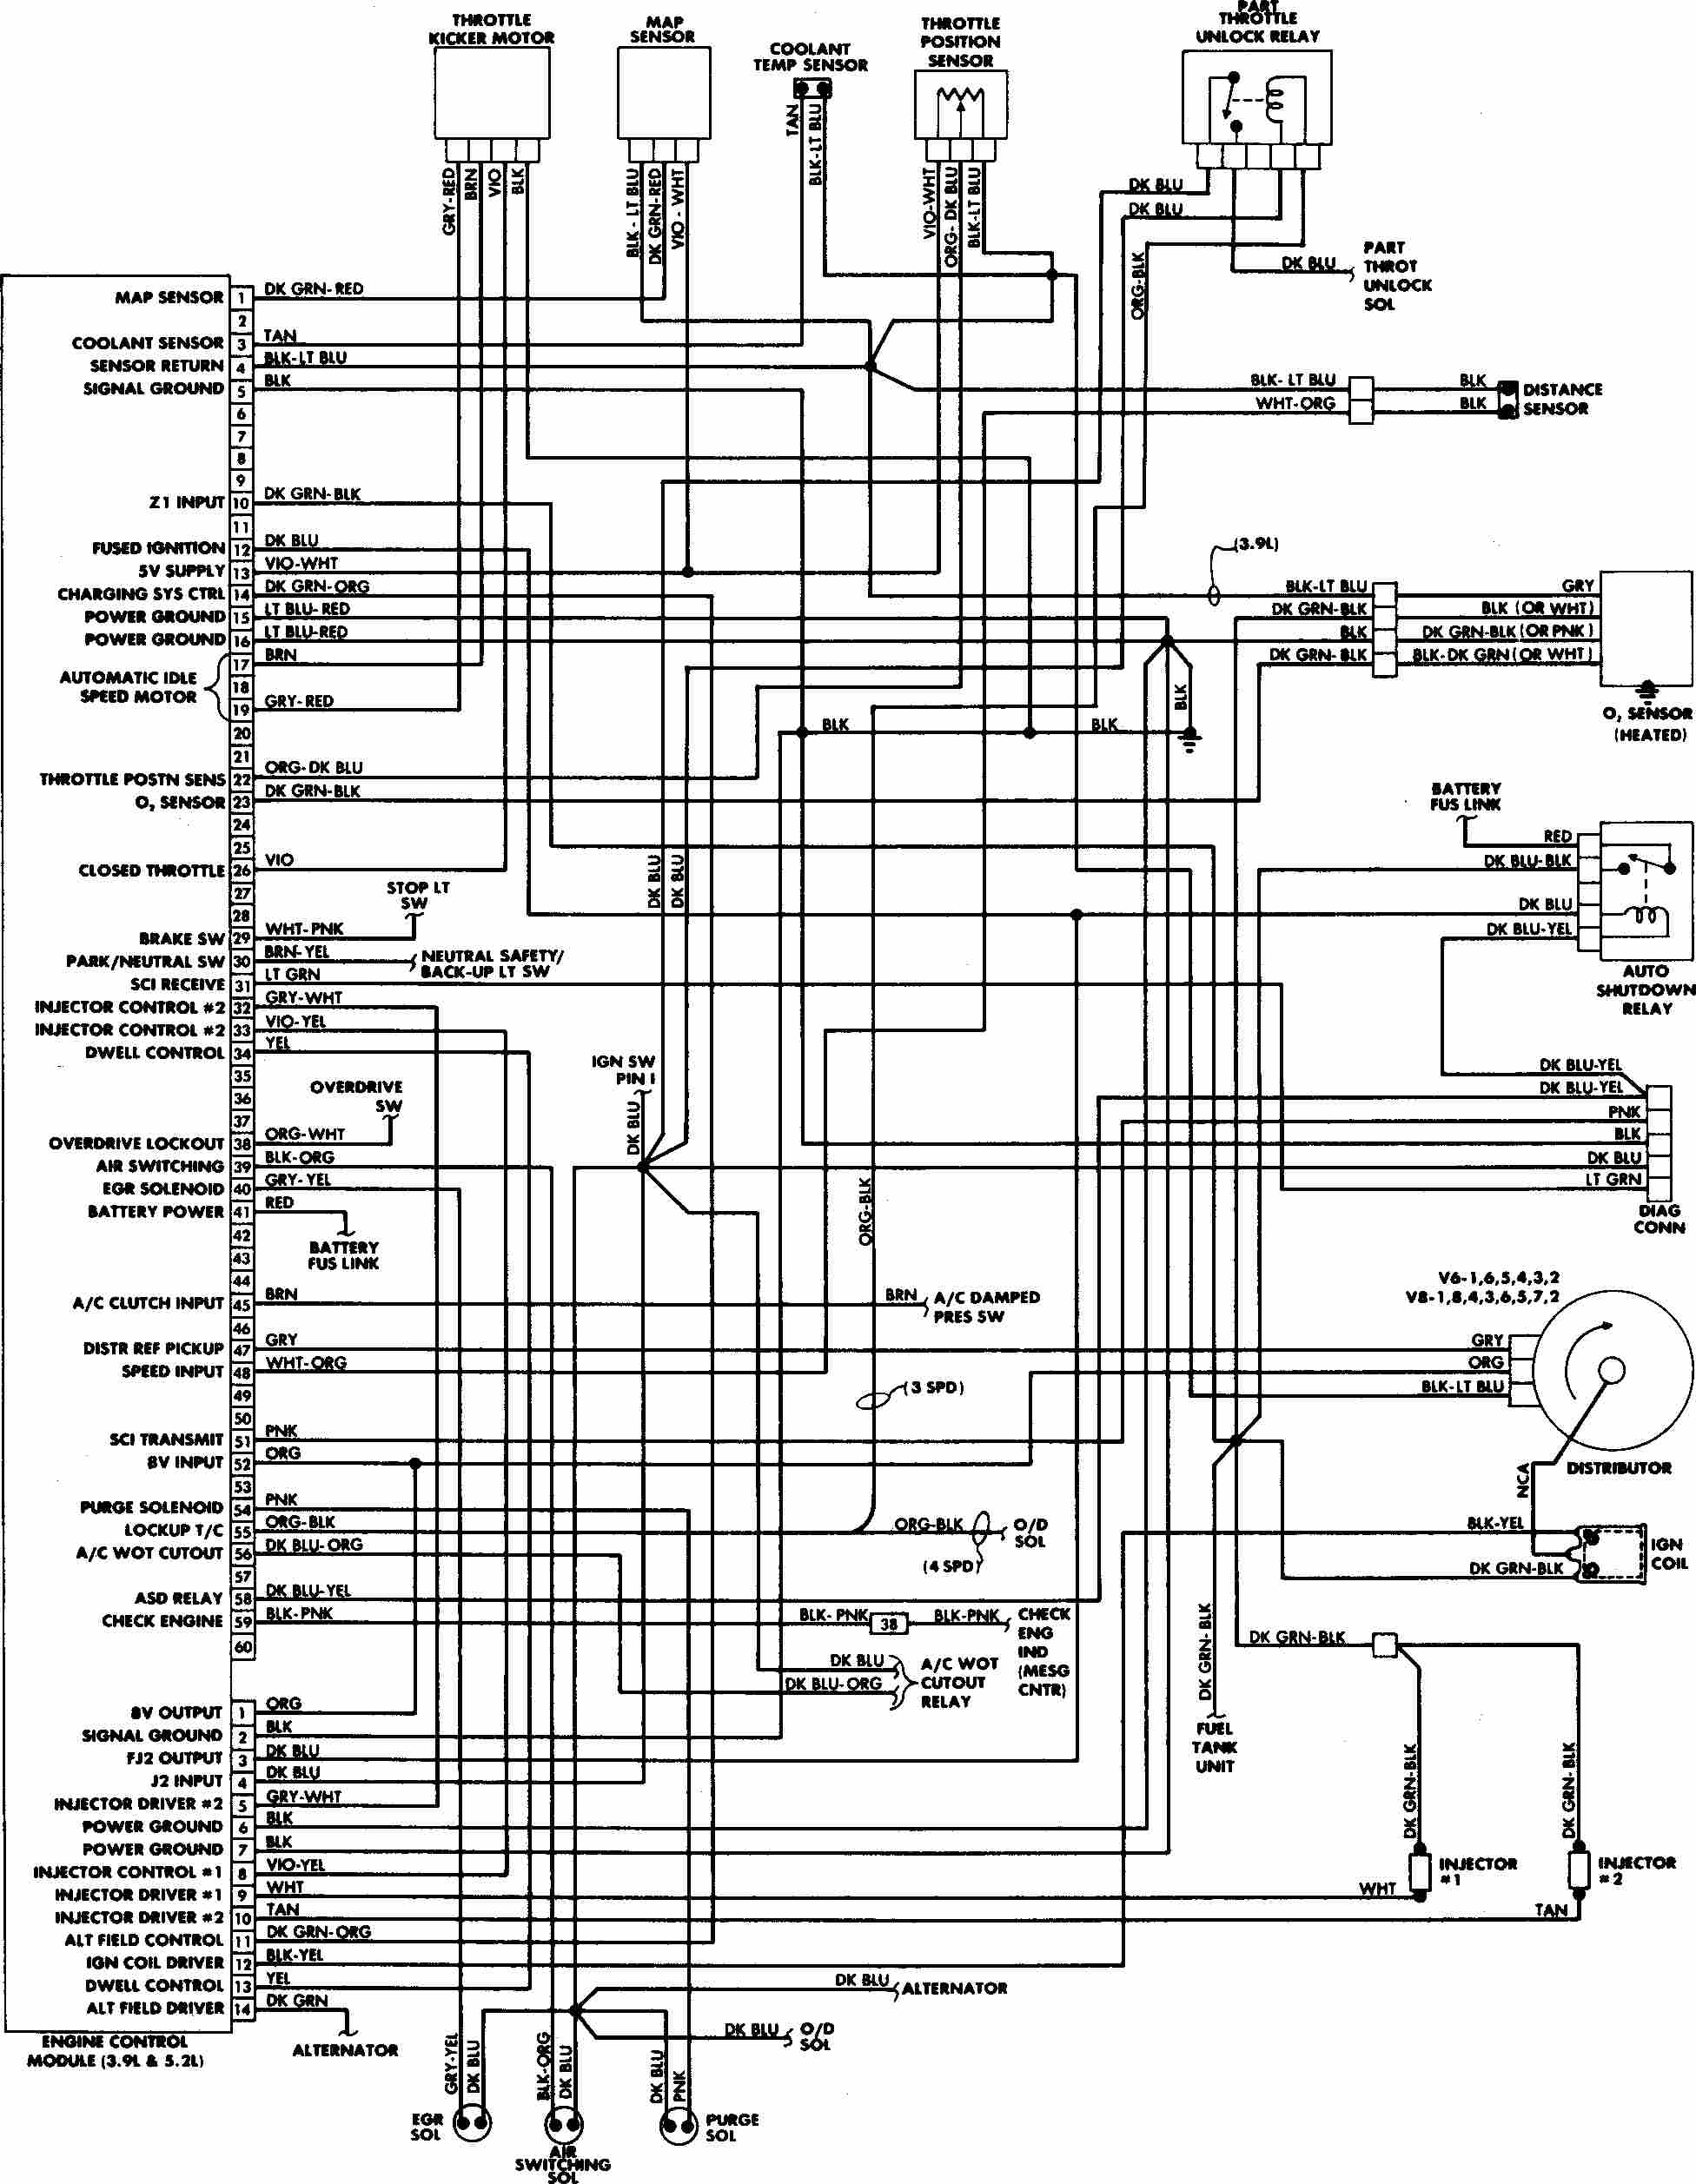 Ottawa Wiring Diagram 2006 | Wiring Schematic Diagram - 66 ... on